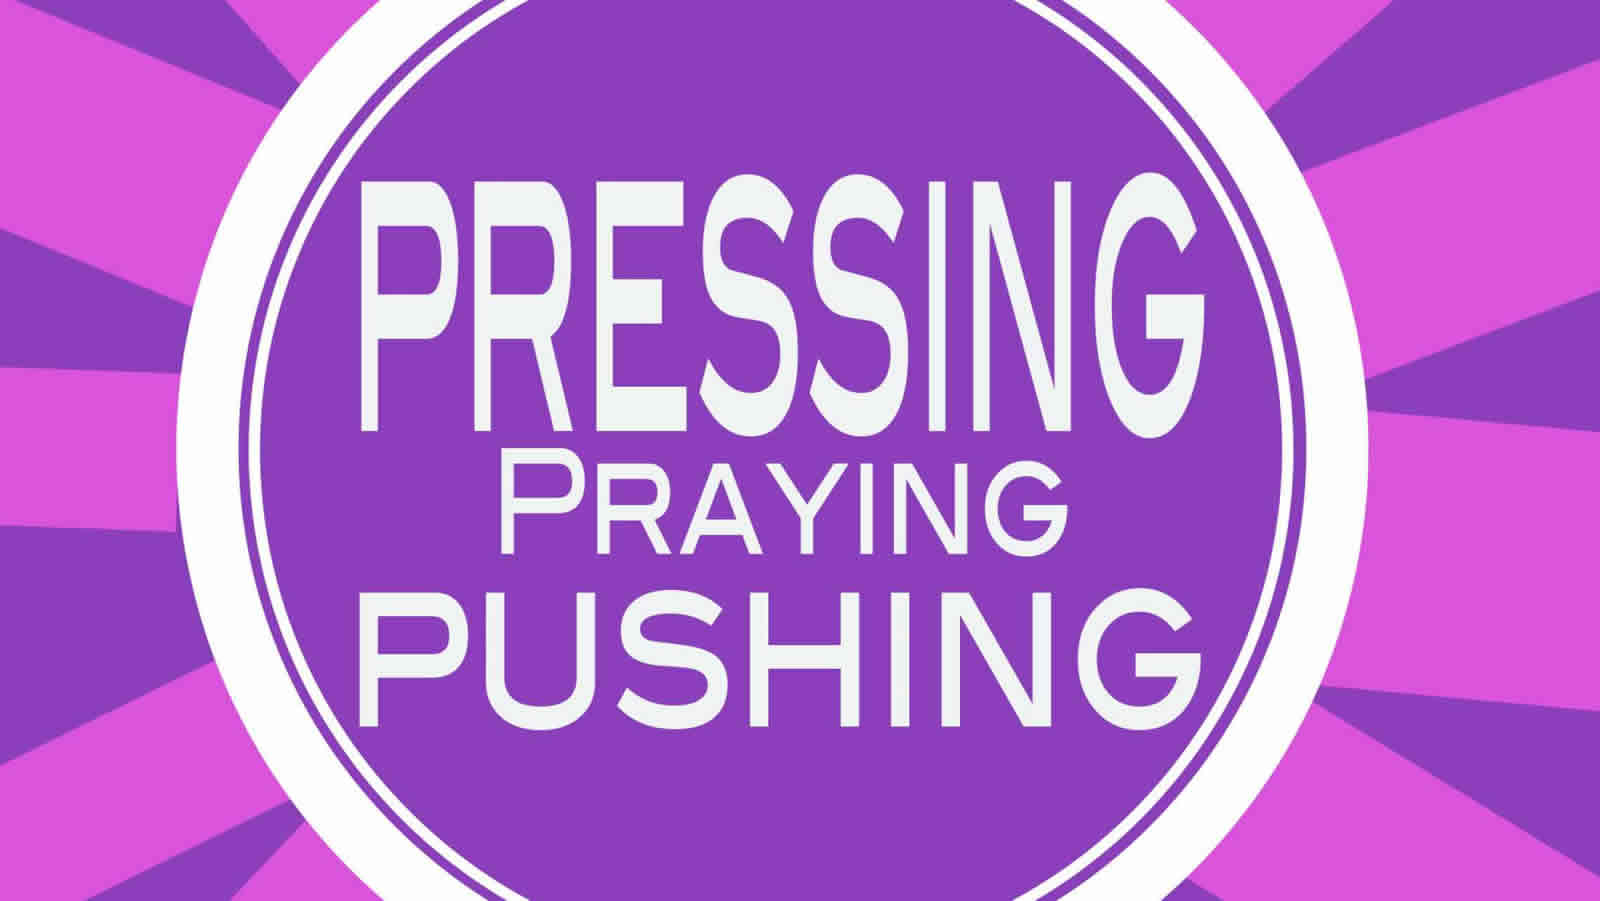 Pressing Praying Pushing